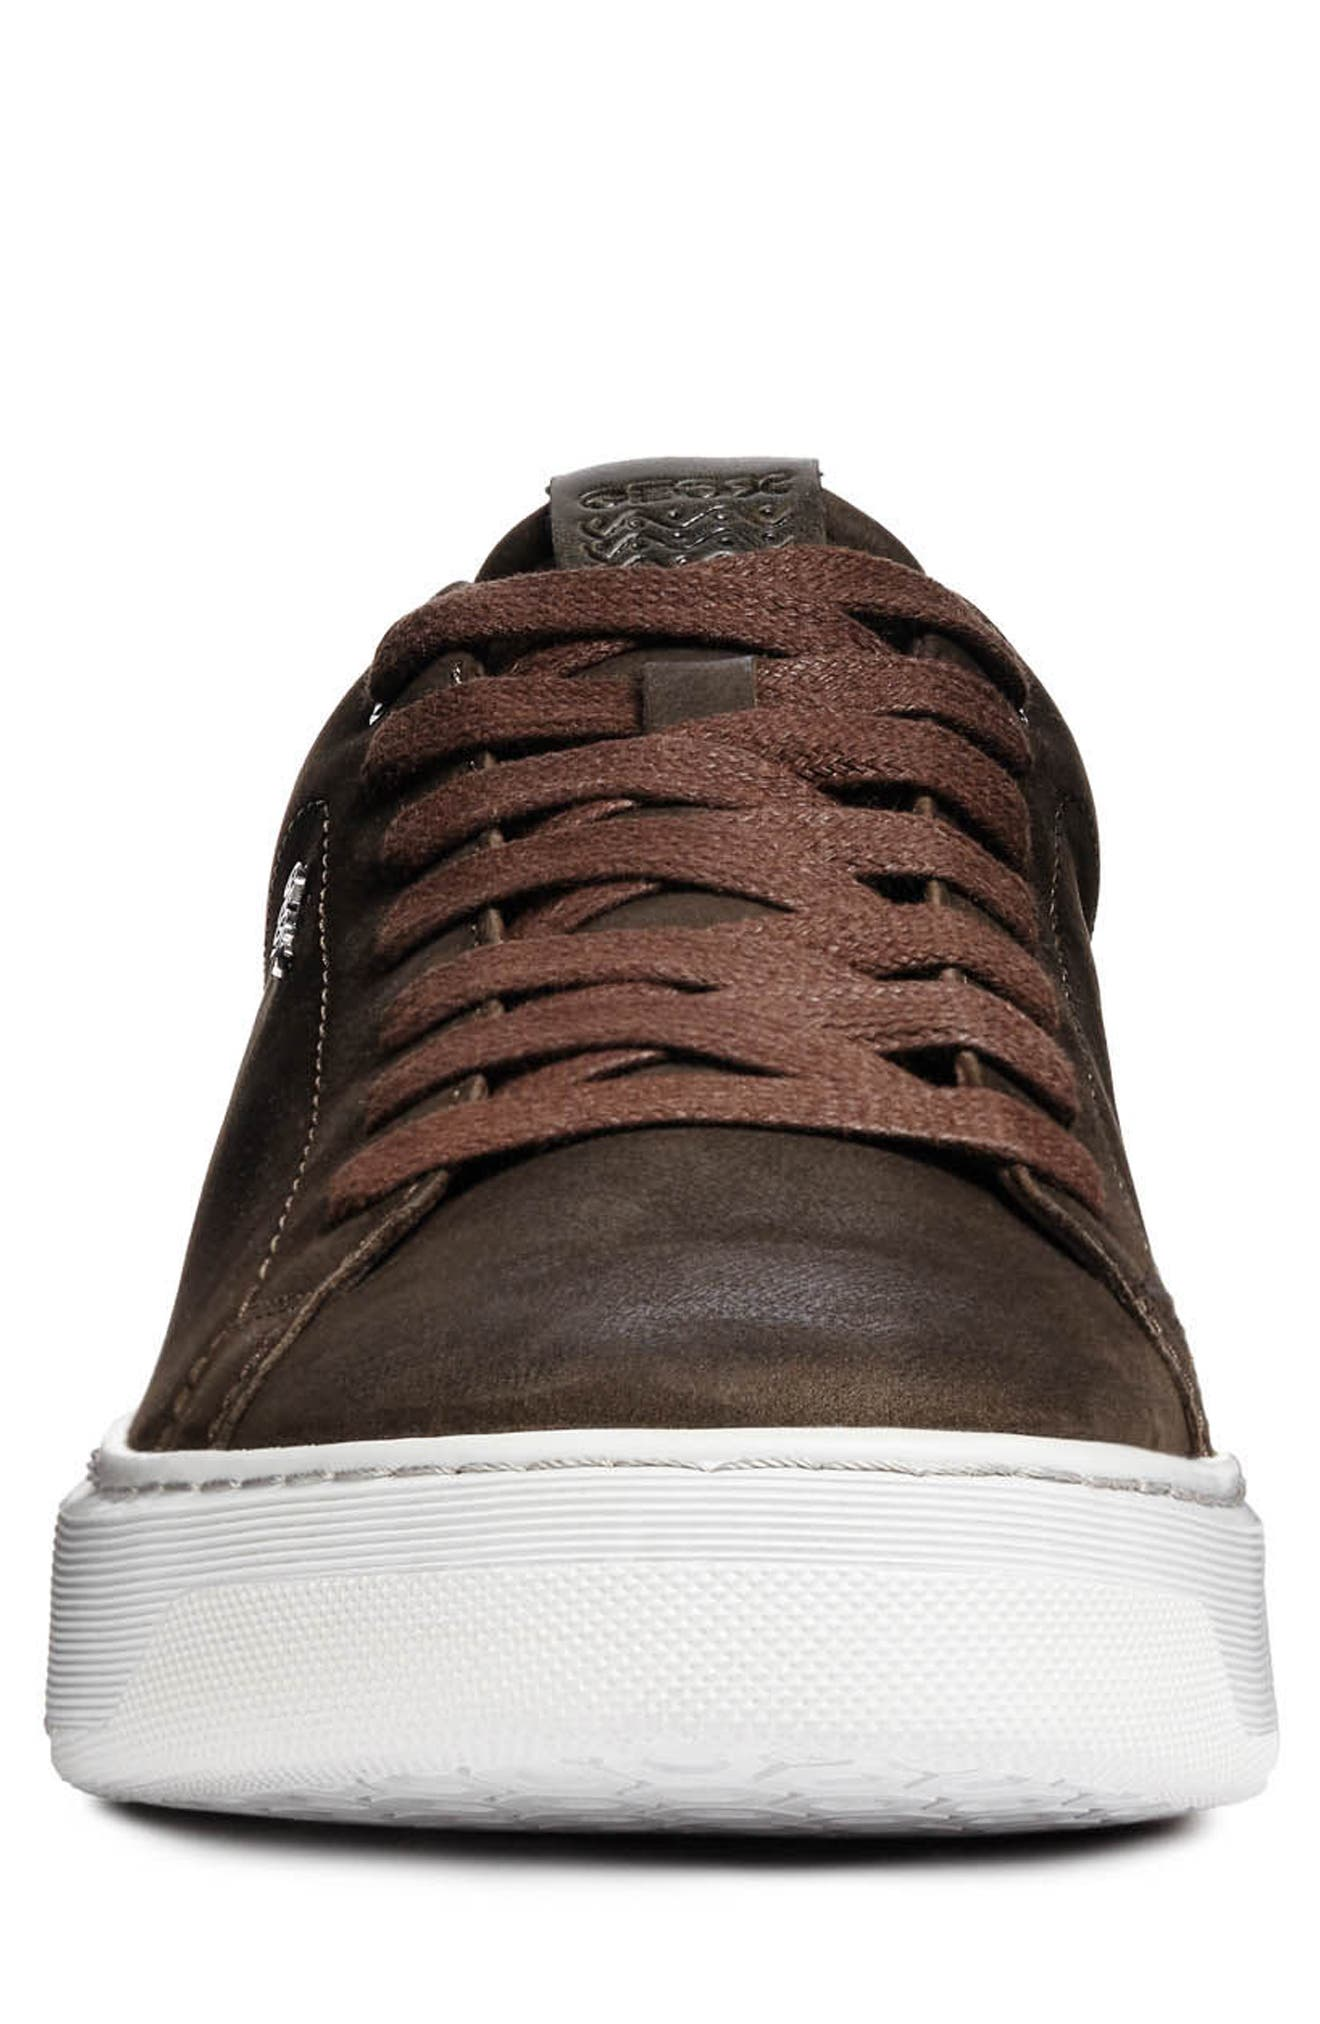 Deiven 5 Low Top Sneaker,                             Alternate thumbnail 4, color,                             DARK COFFEE LEATHER